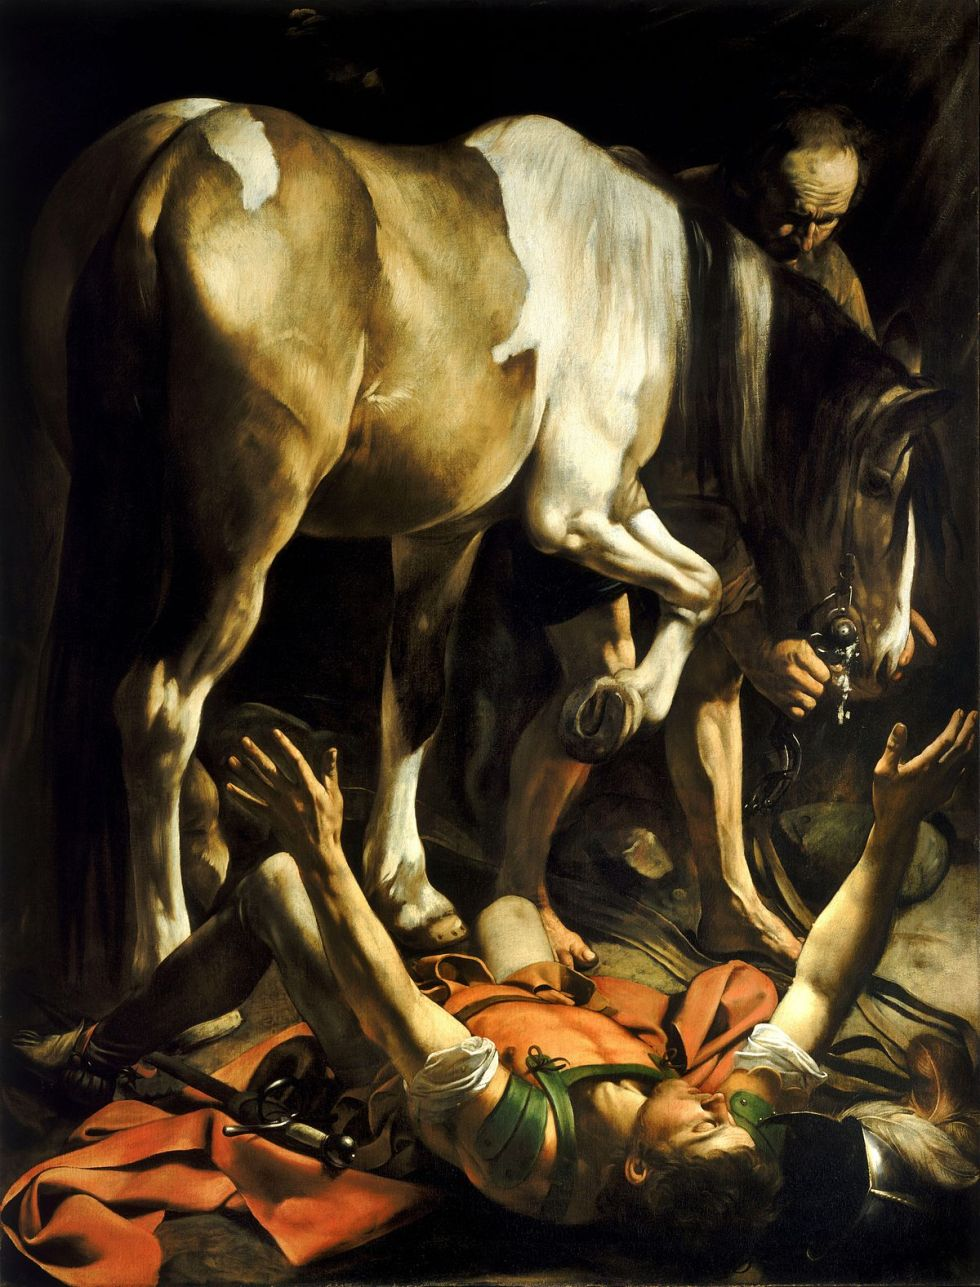 1200px-Conversion_on_the_Way_to_Damascus-Caravaggio_(c.1600-1)